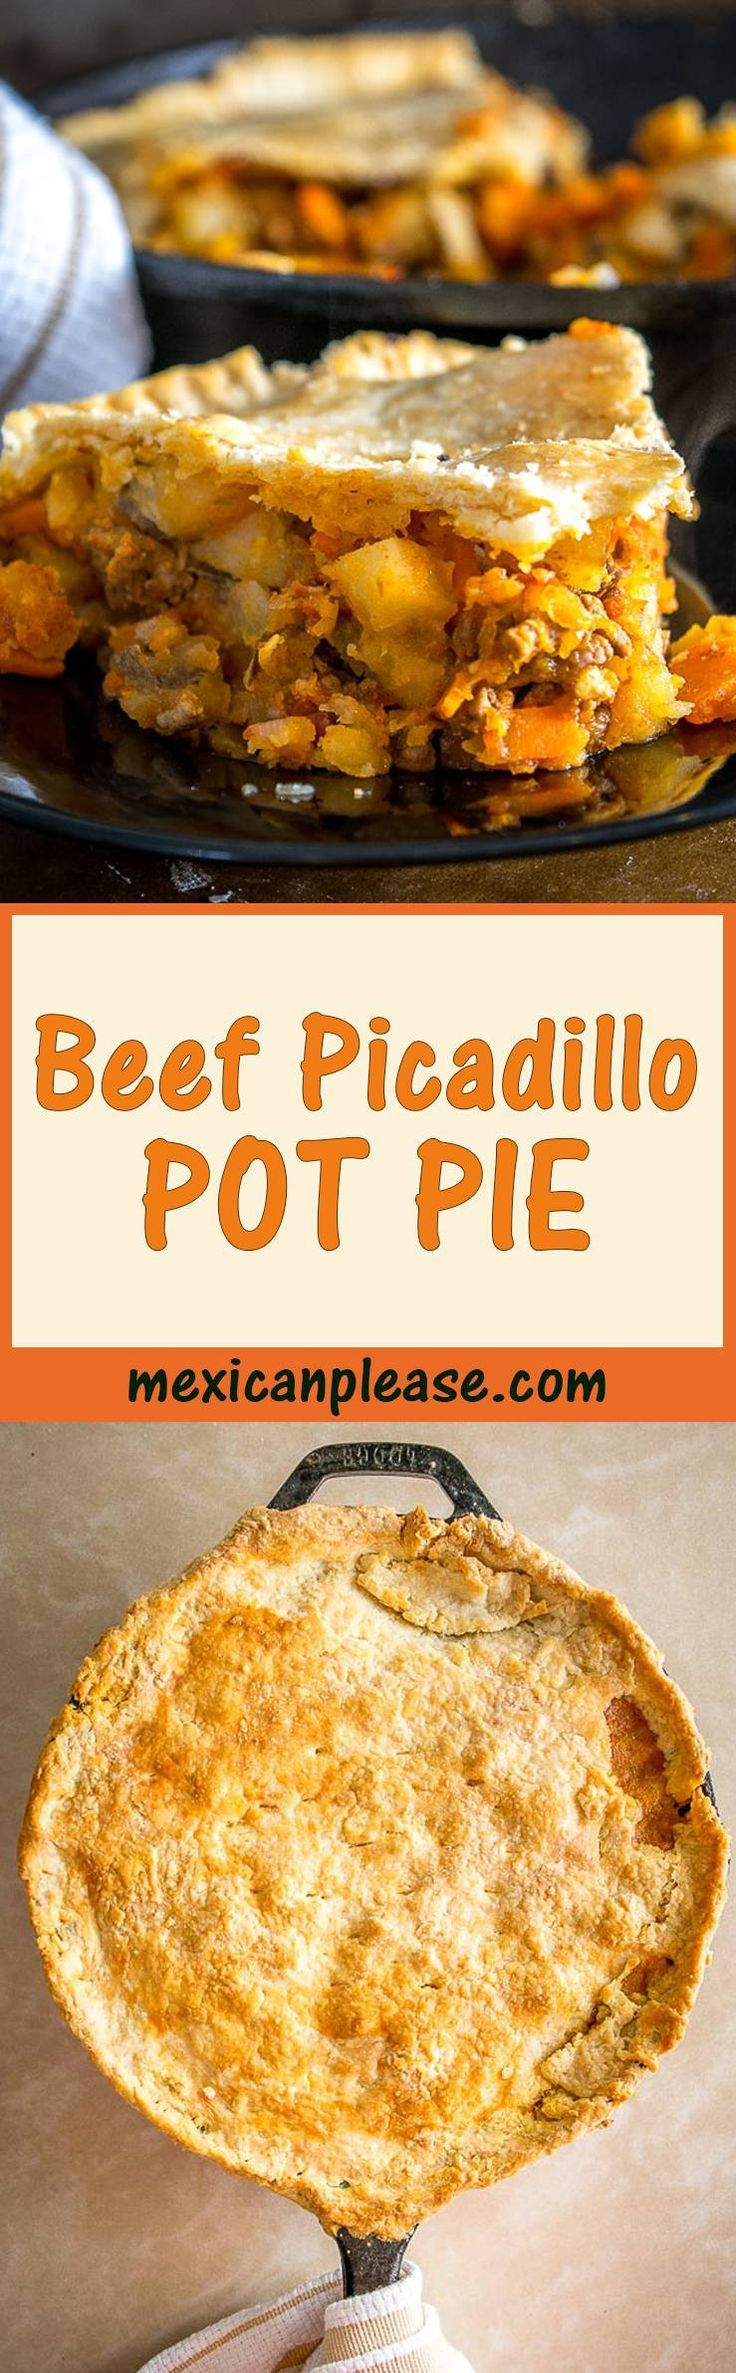 This skillet pot pie is a great way to serve up a batch of Mexican Picadillo.  The flaky pastry is a perfect match for the hearty beef and potatoes.   So good!  mexicanplease.com